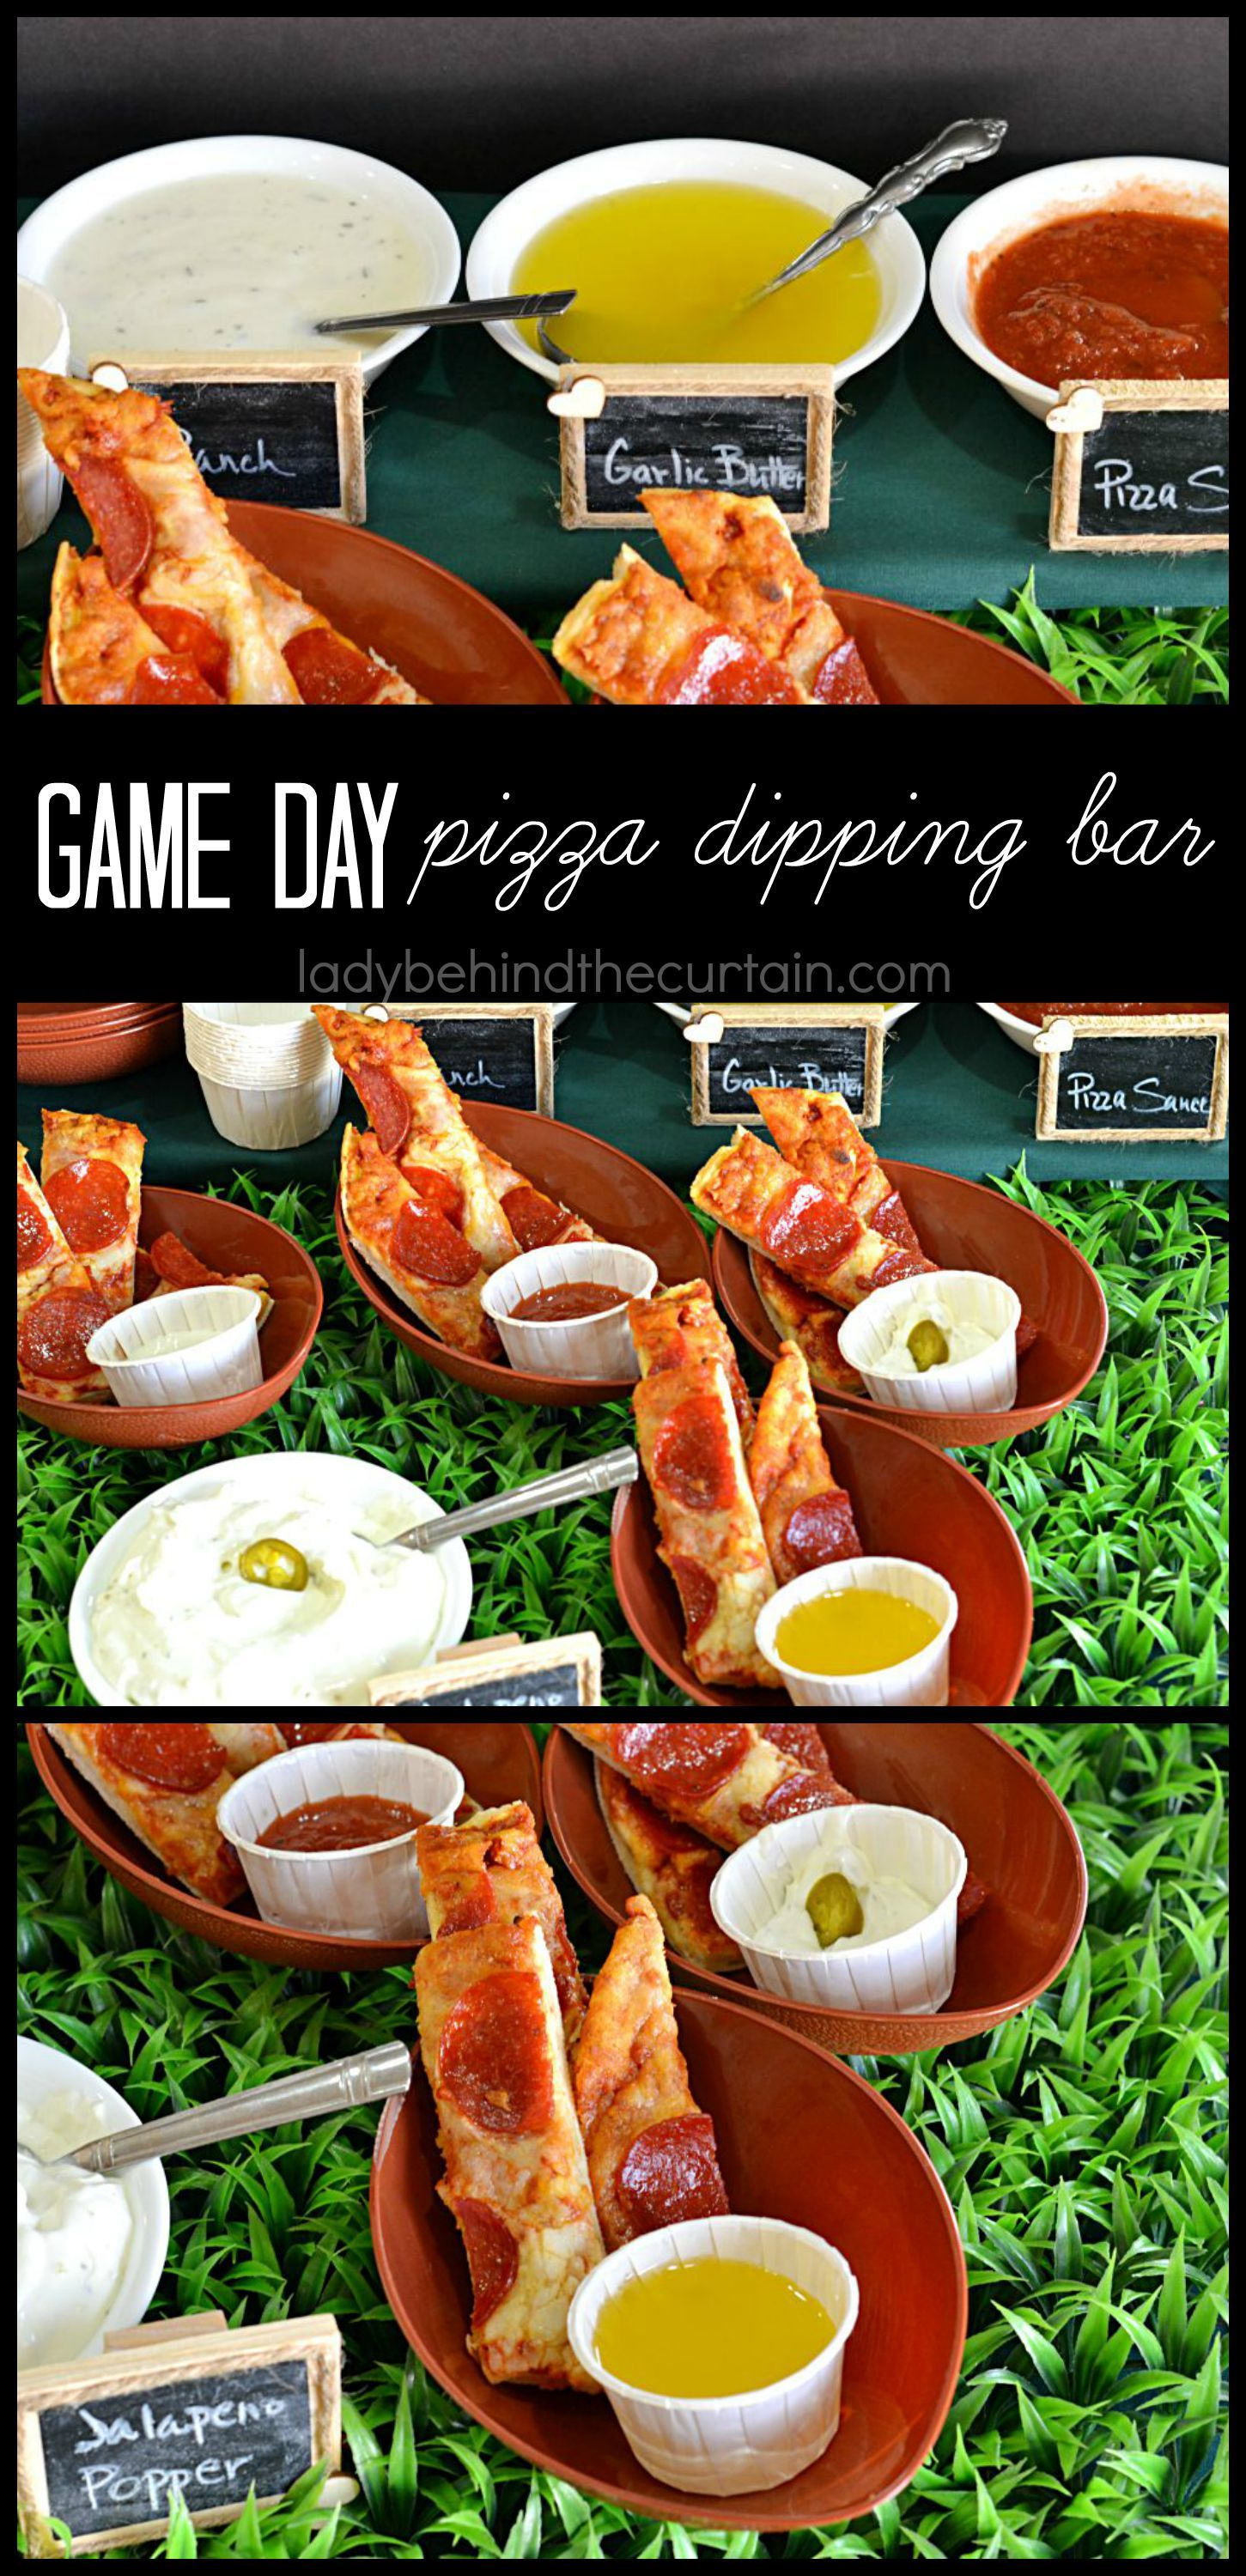 Game Day Pizza Dipping Bar - Lady Behind the Curtain